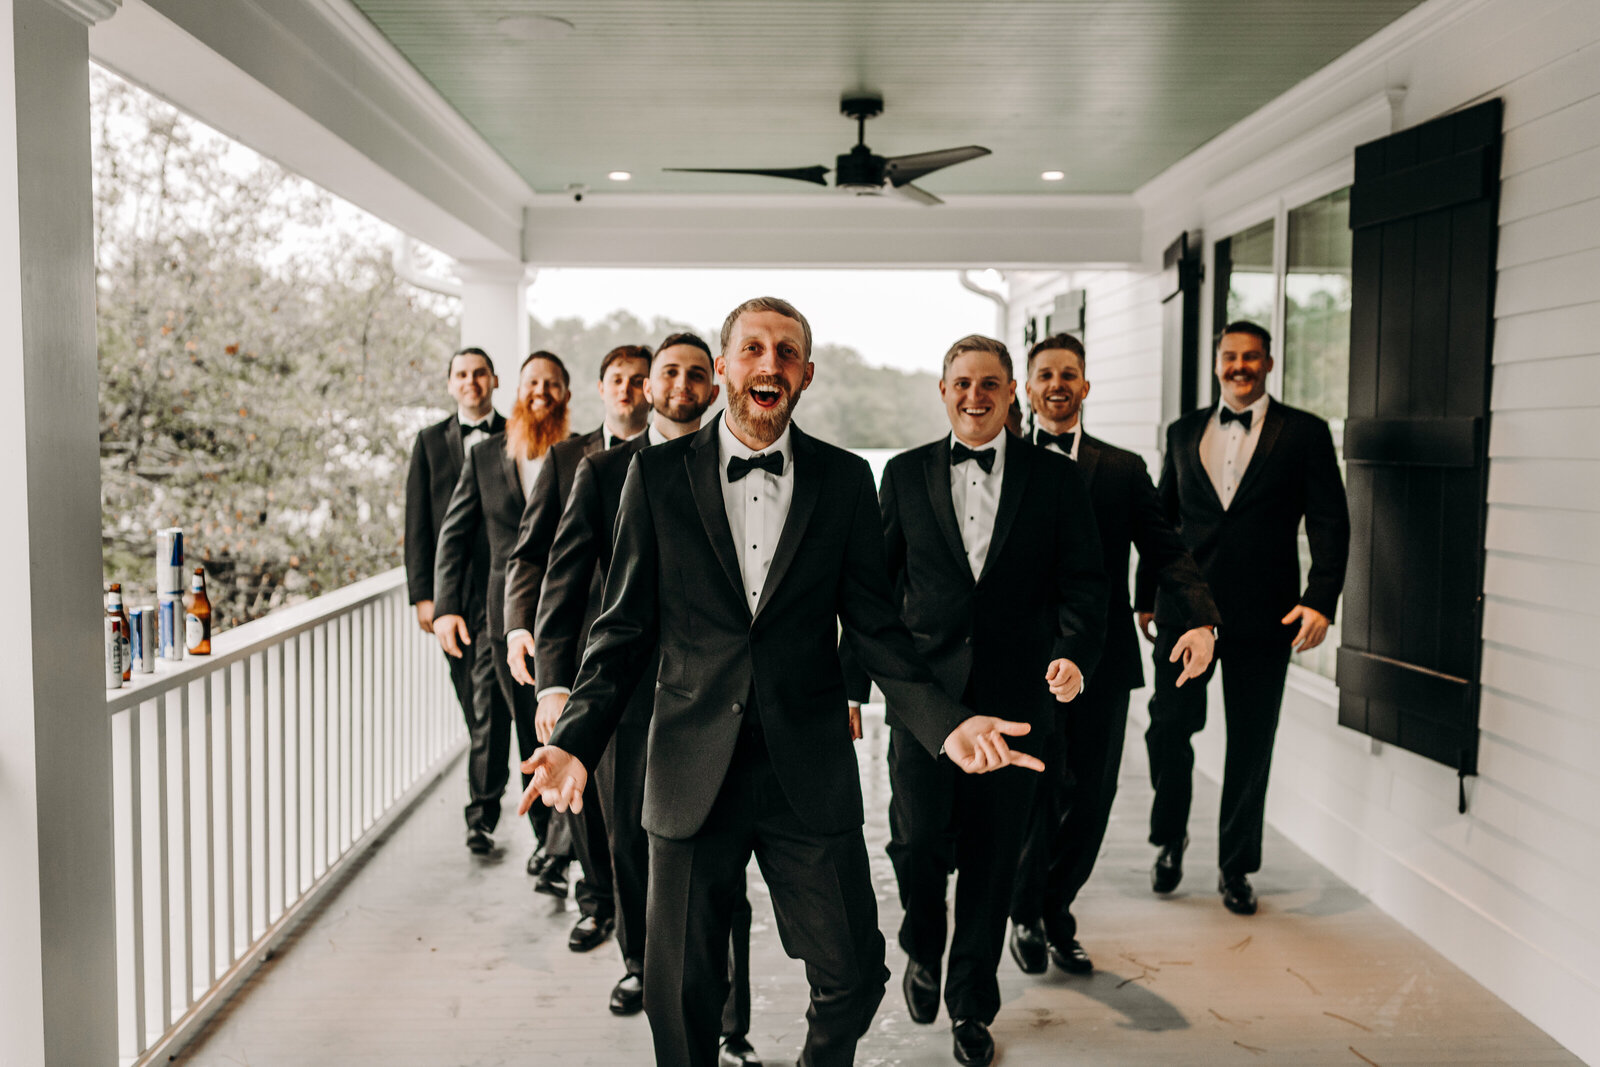 Groom with wedding party at White Oak Road wedding venue in Appling, Ga